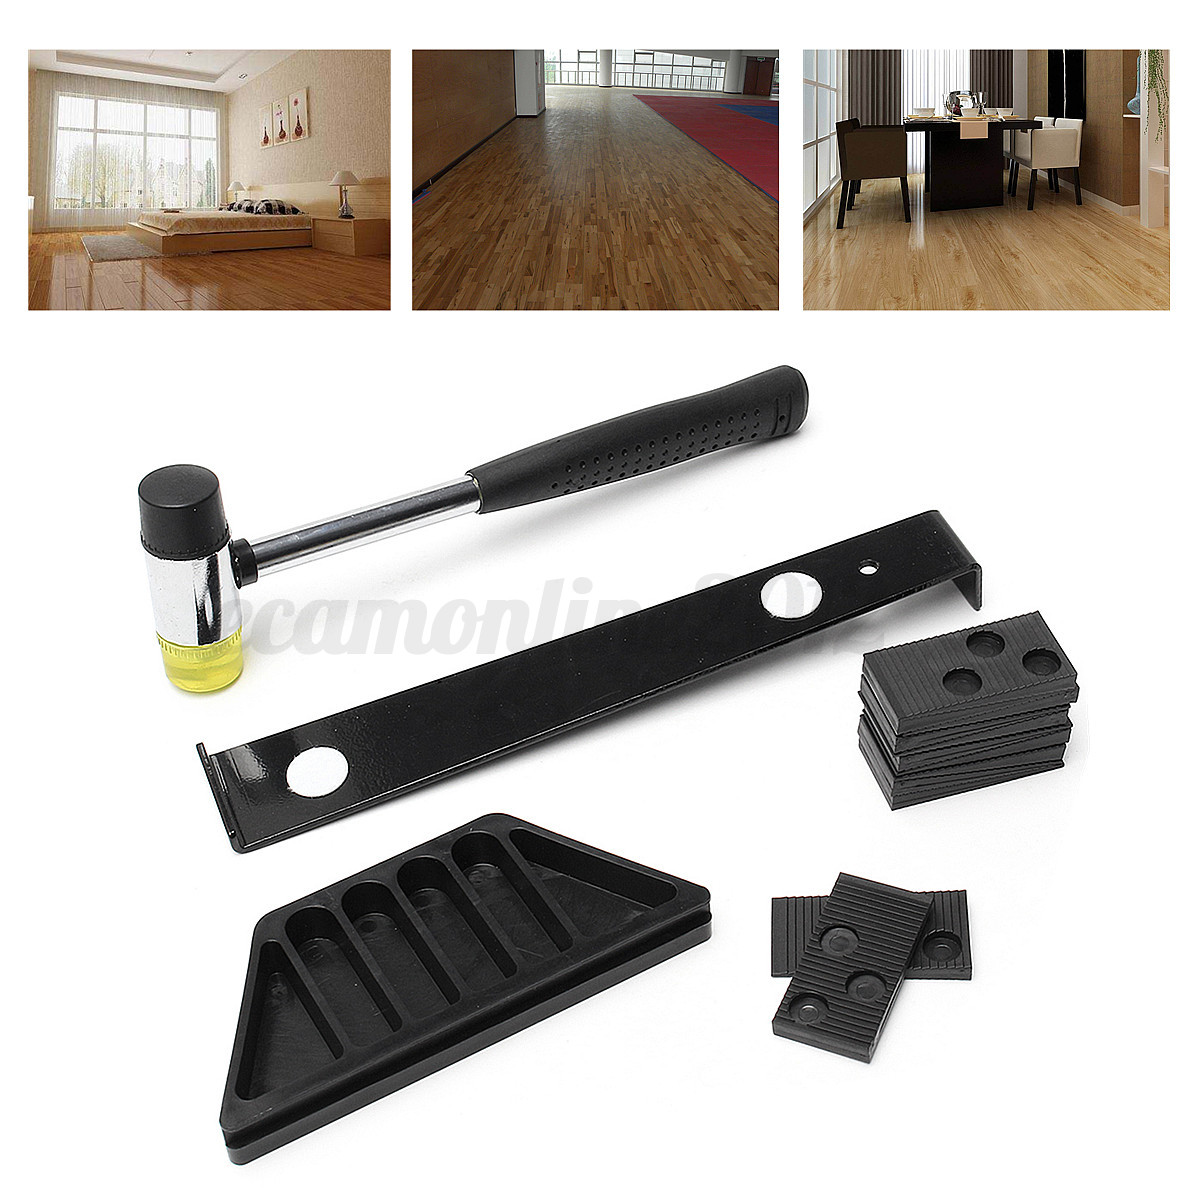 Wood flooring laminate installation kit set wooden floor for Floor installation